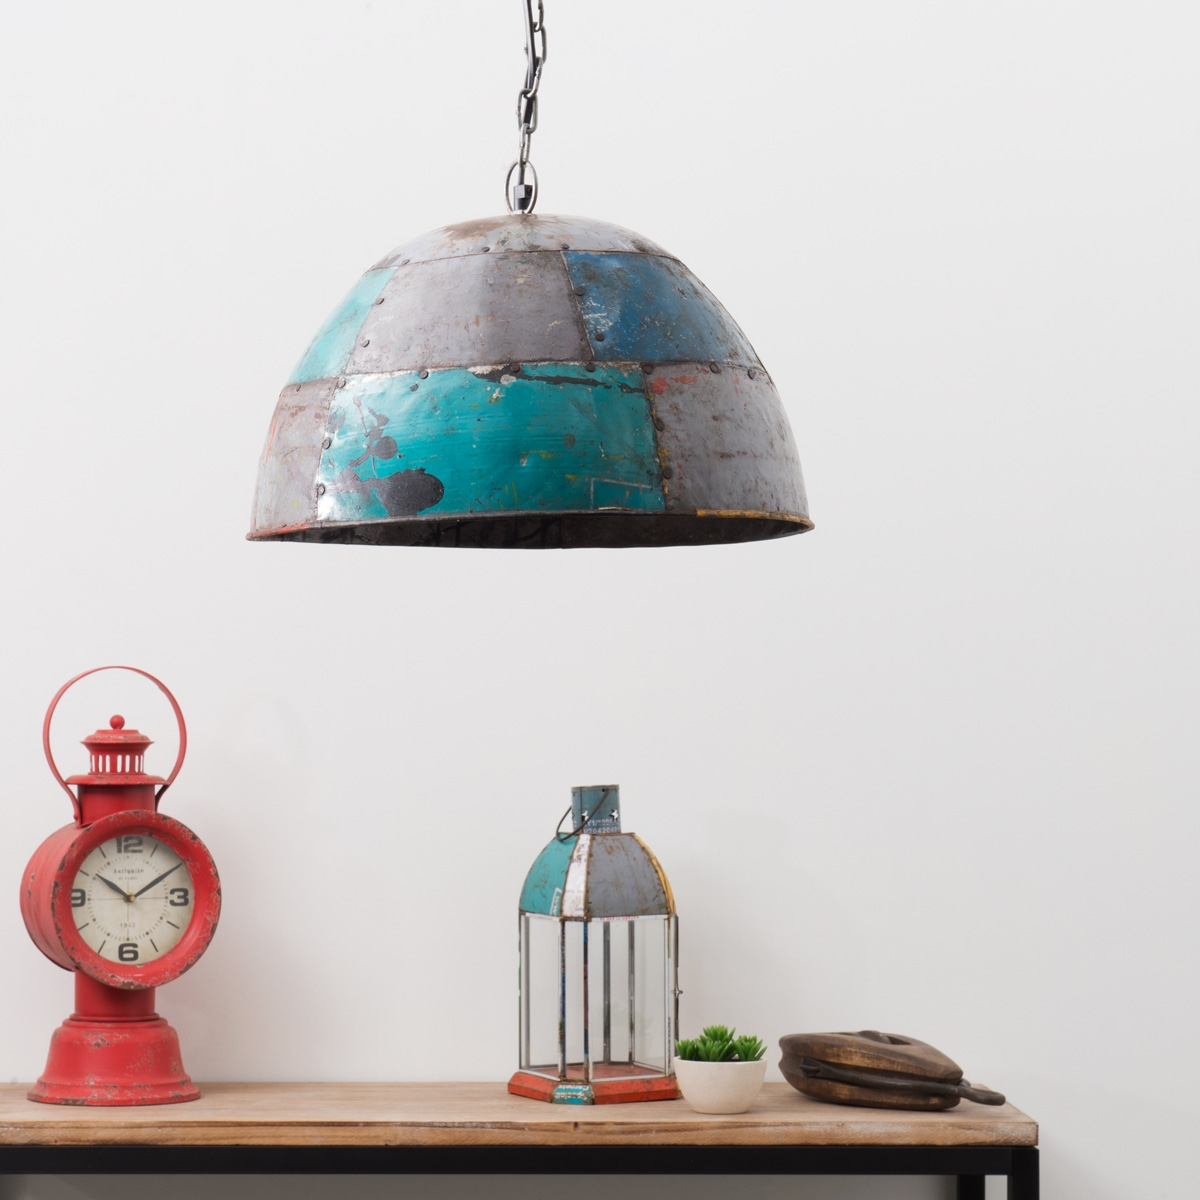 Suspension indus r cup 39 maisons du monde pickture - Maison du monde suspension ...